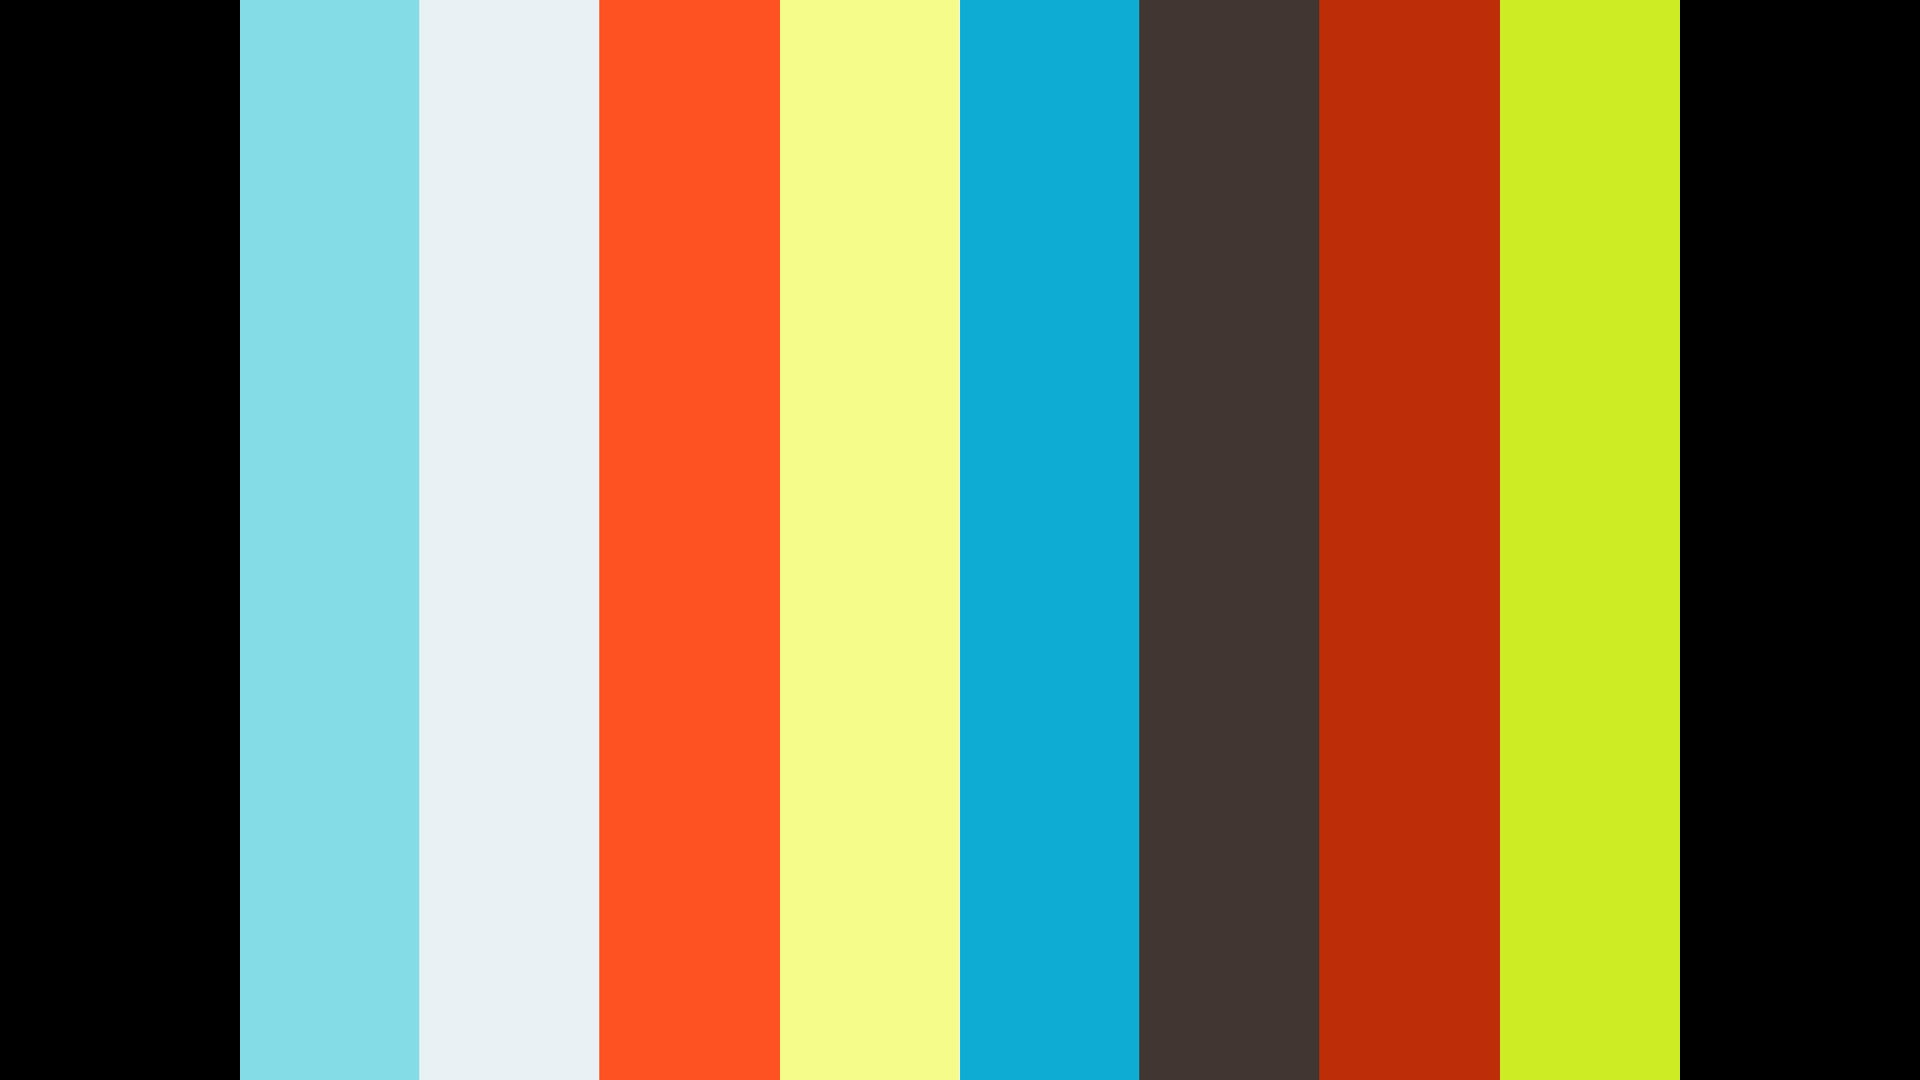 Kevin Kane speaks about the importance of outdoor play